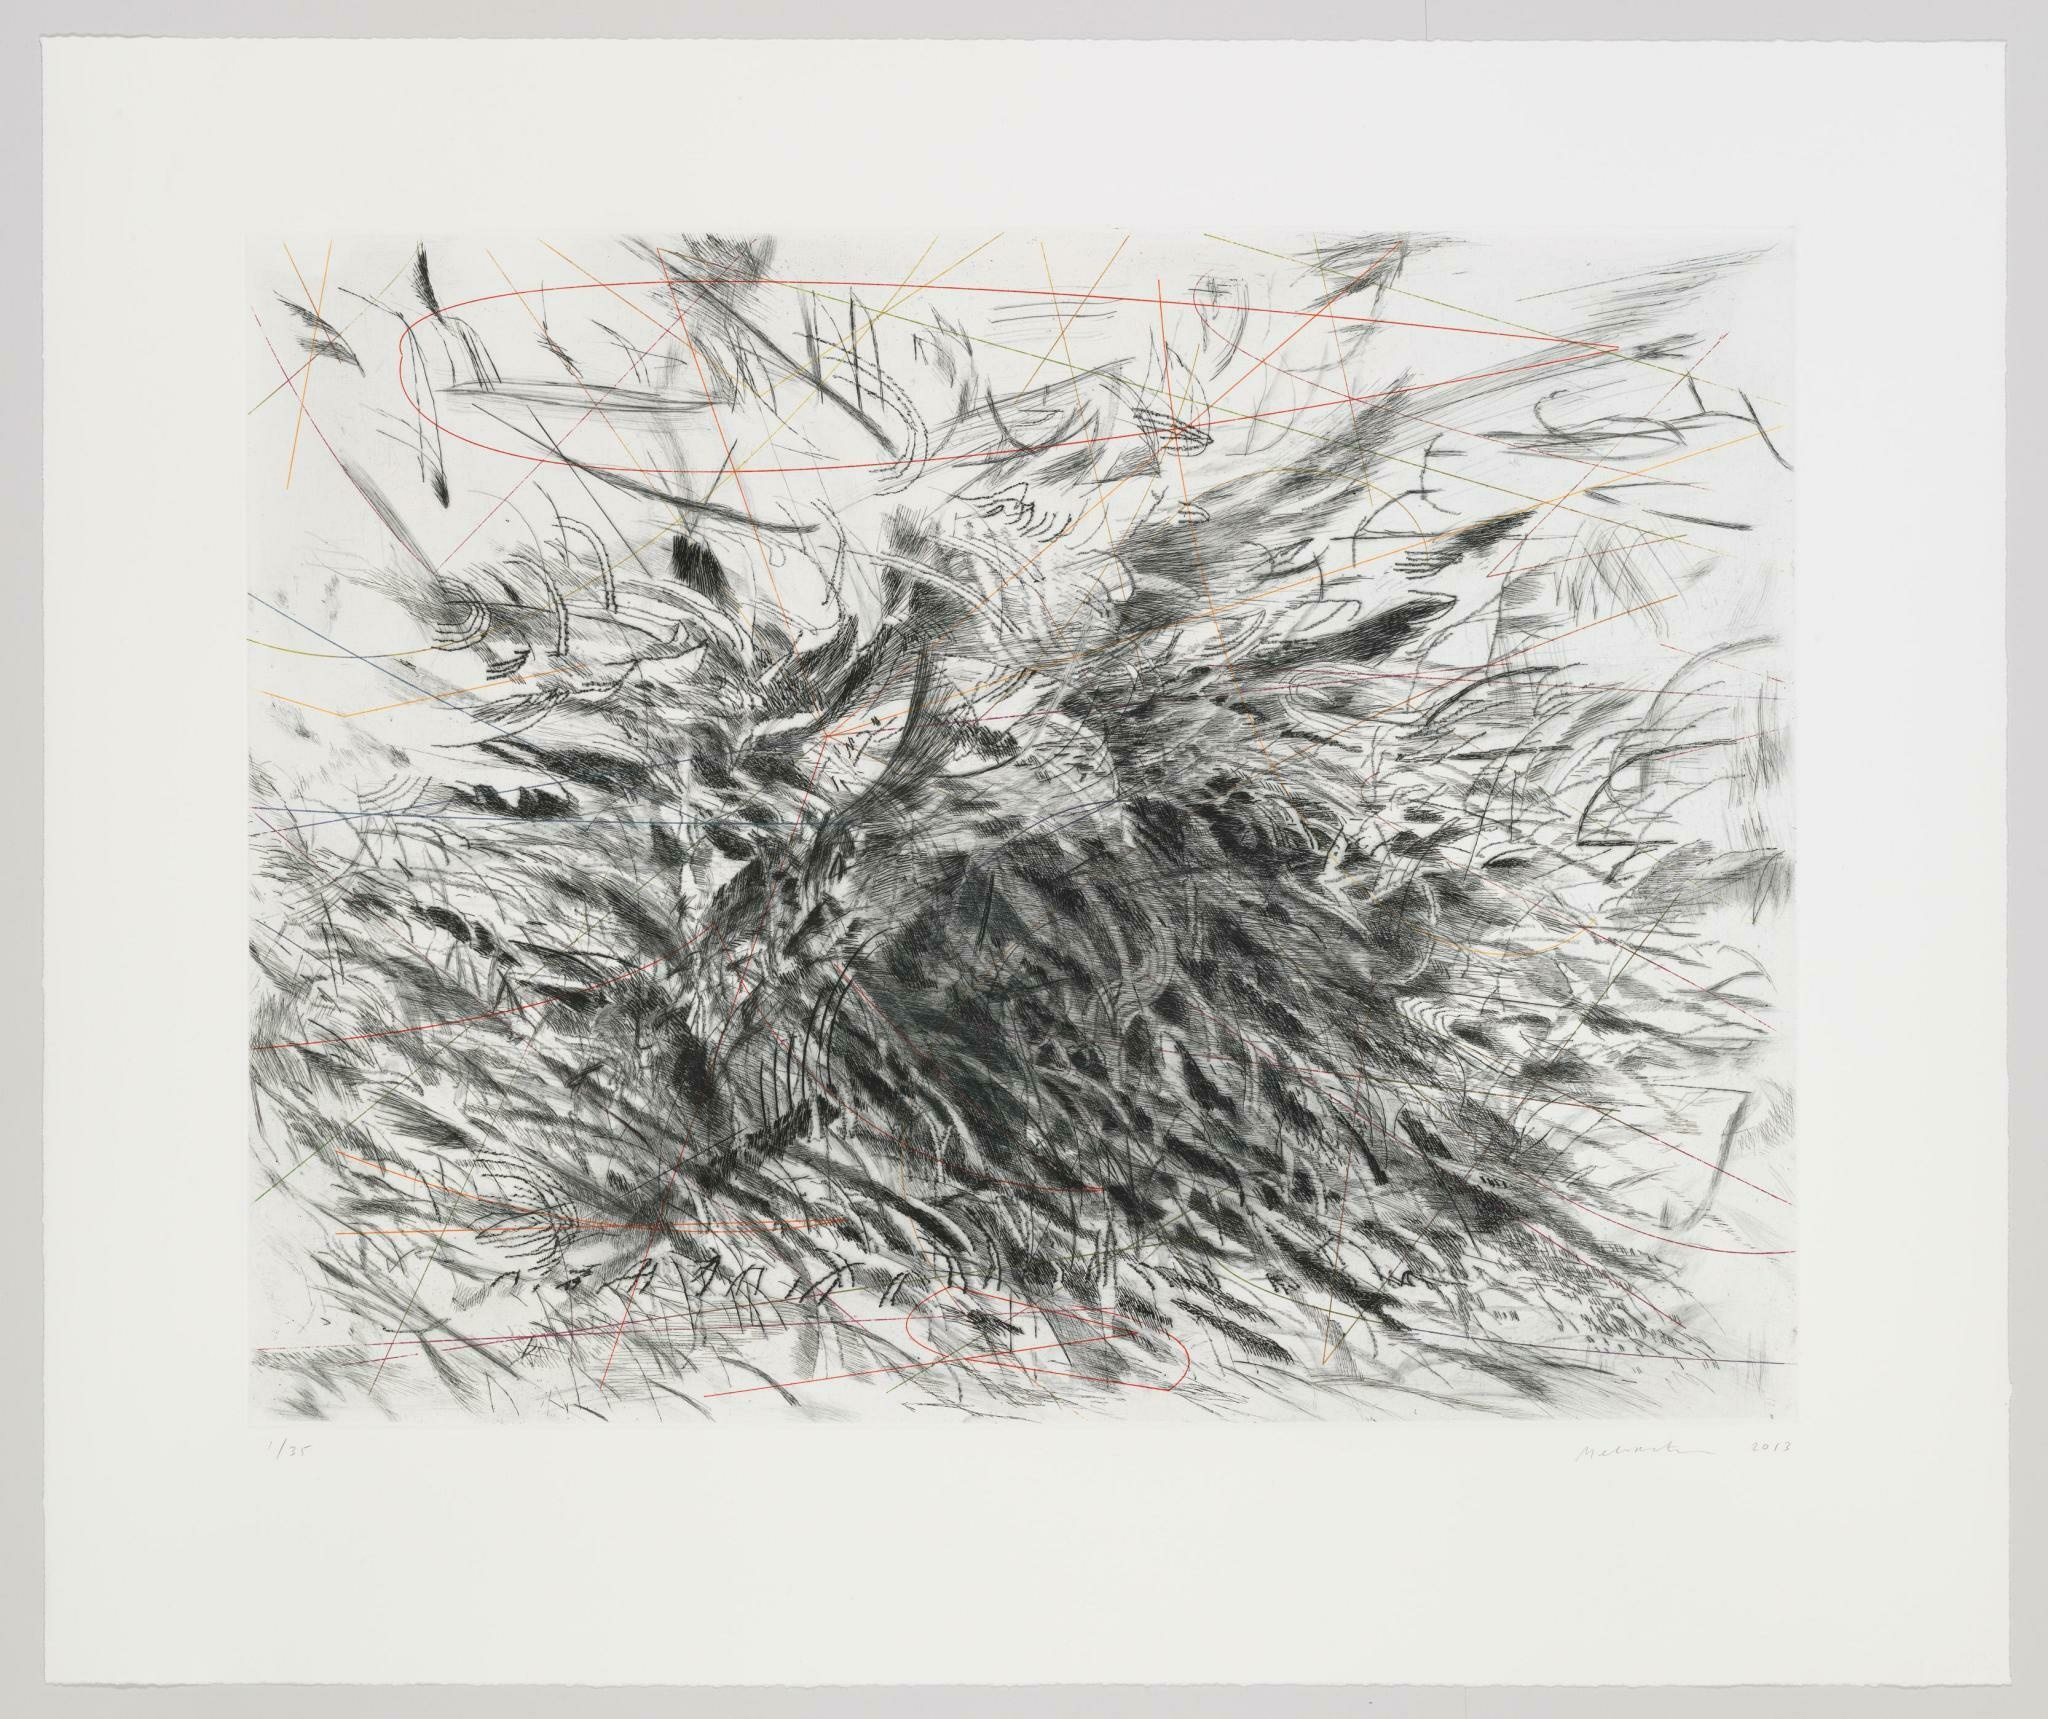 A frenzy of quick, black marks emanate from a dense center to the edges of a designated frame, while thin red lines intermittently weave through the action.